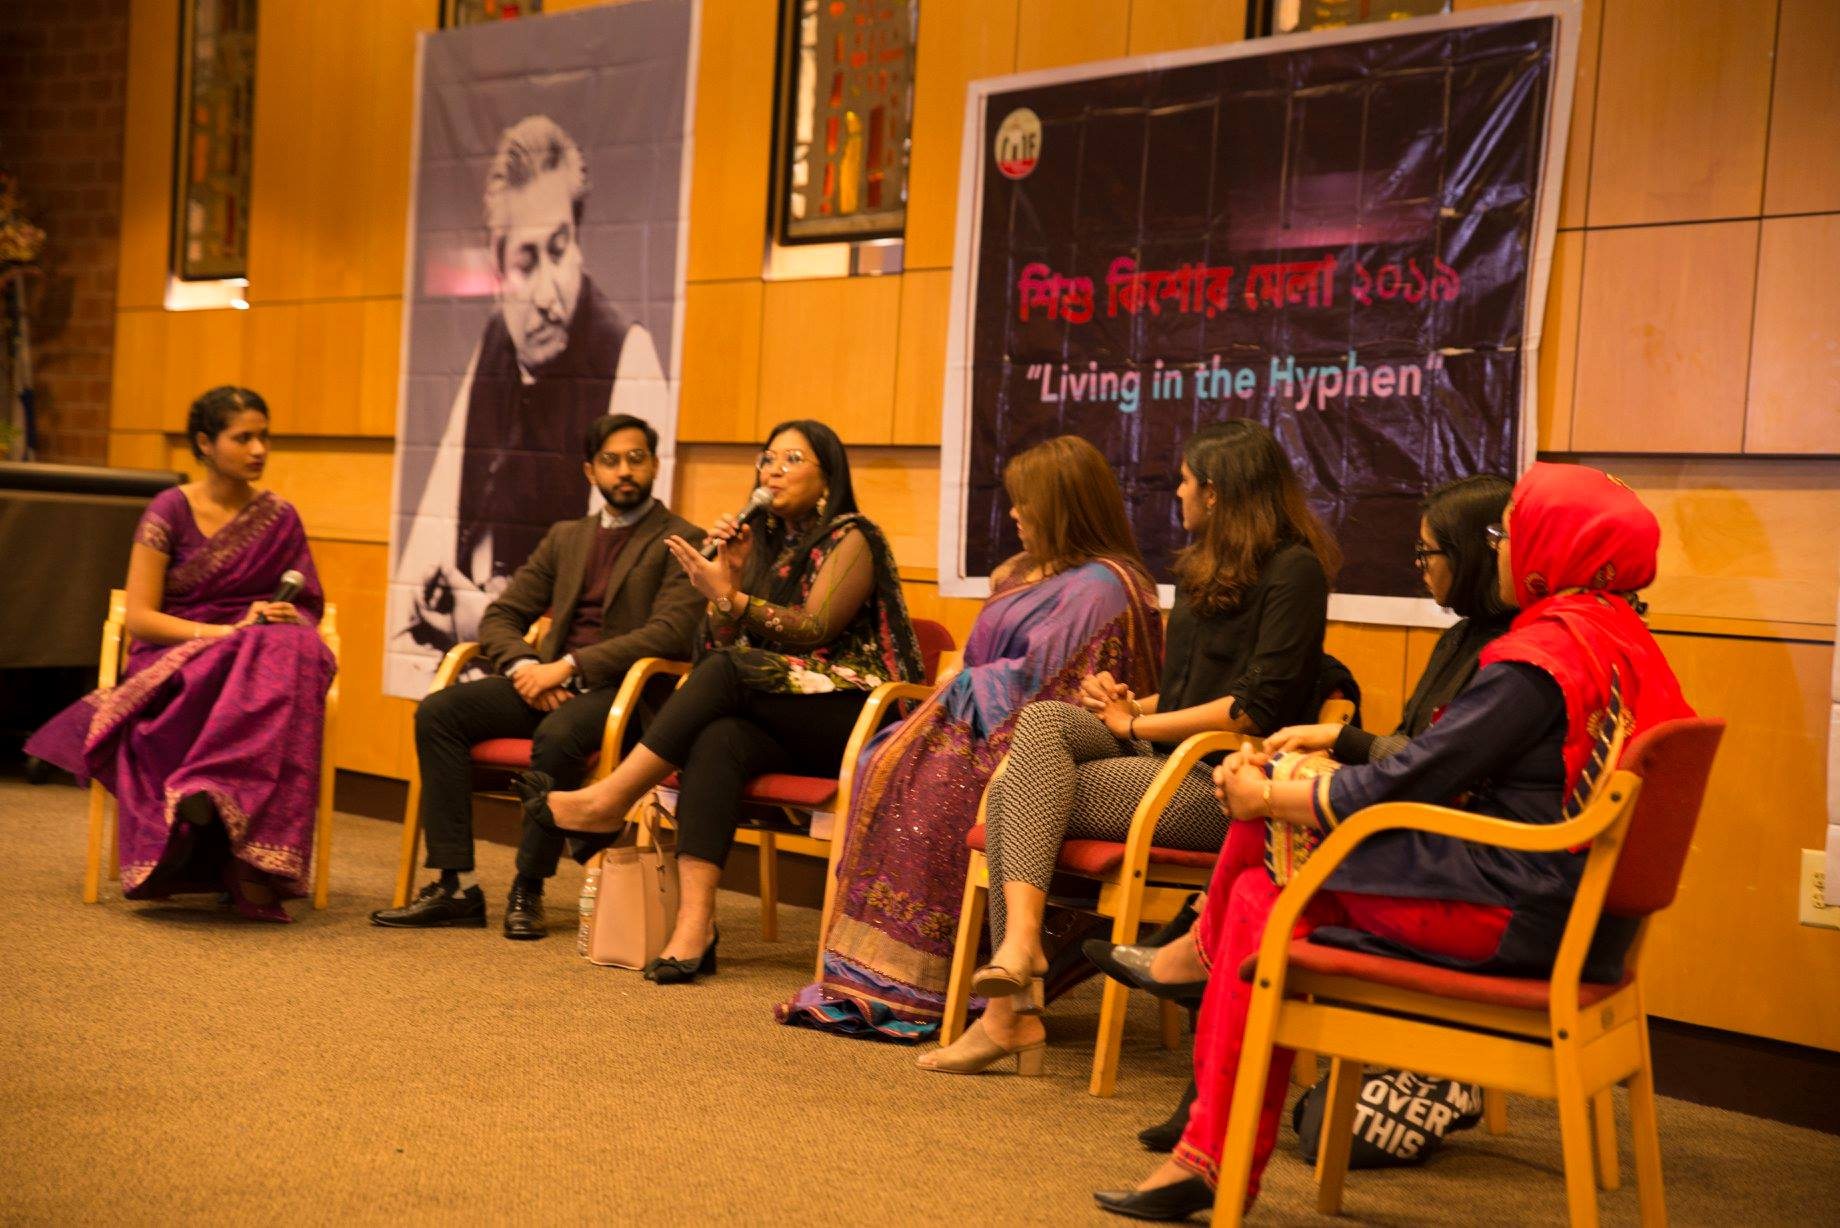 2020-ypf-panel-discussion-photo-by-wasi-ferdous-54416626